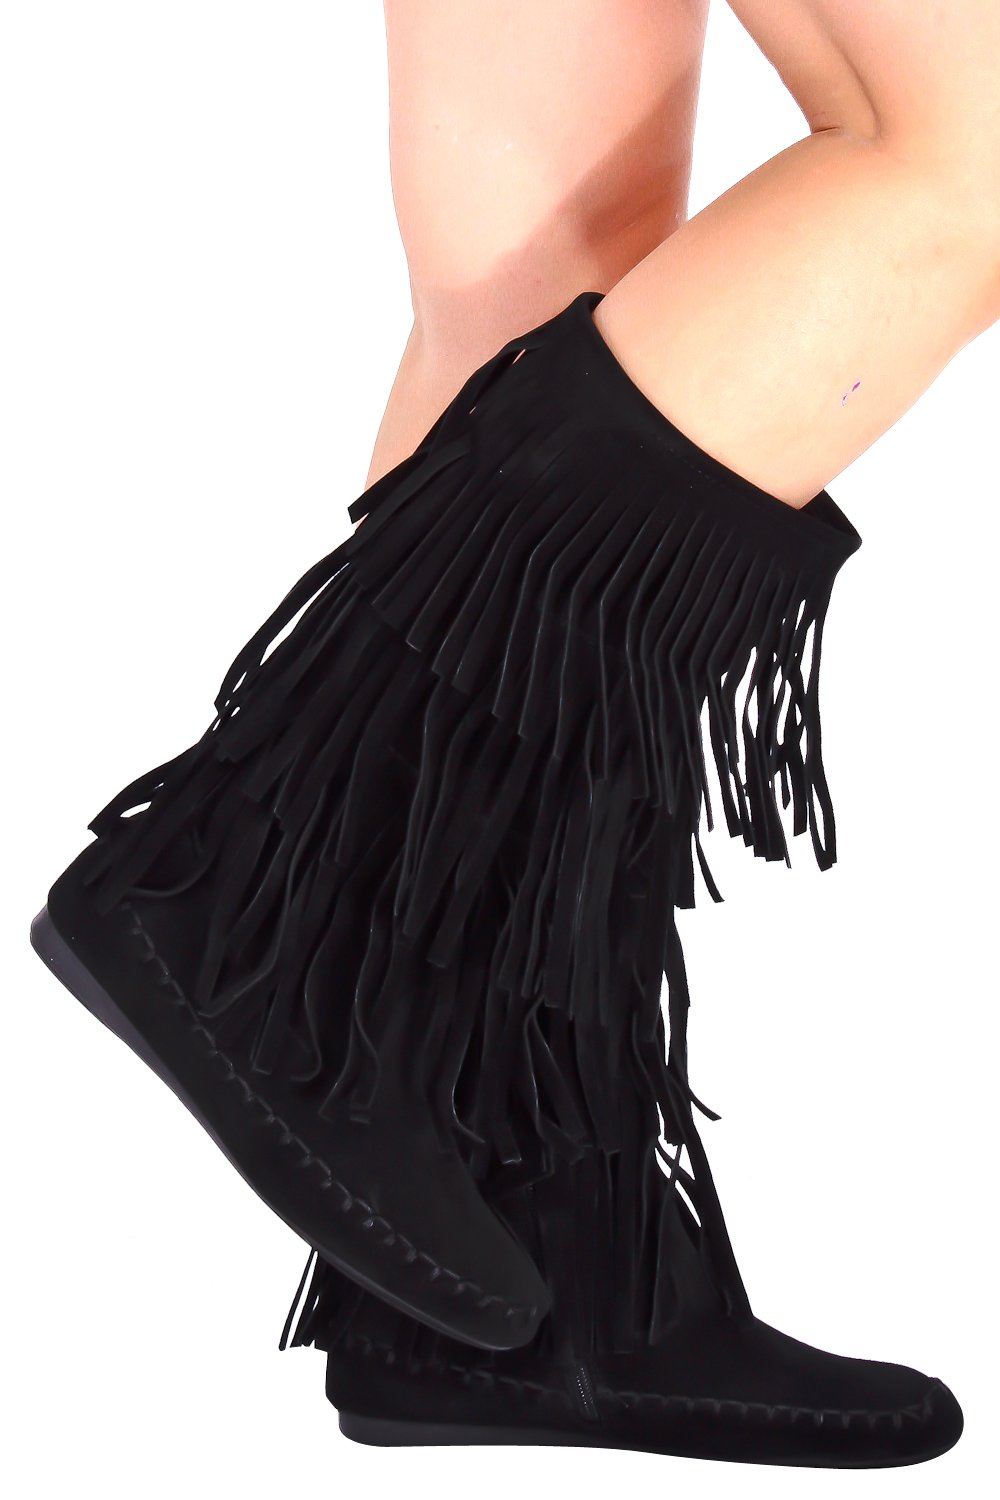 Lolli Couture Young Aloud Faux Suede Moccasin Style Fringe Boot 8 black7248 by Lolli Couture